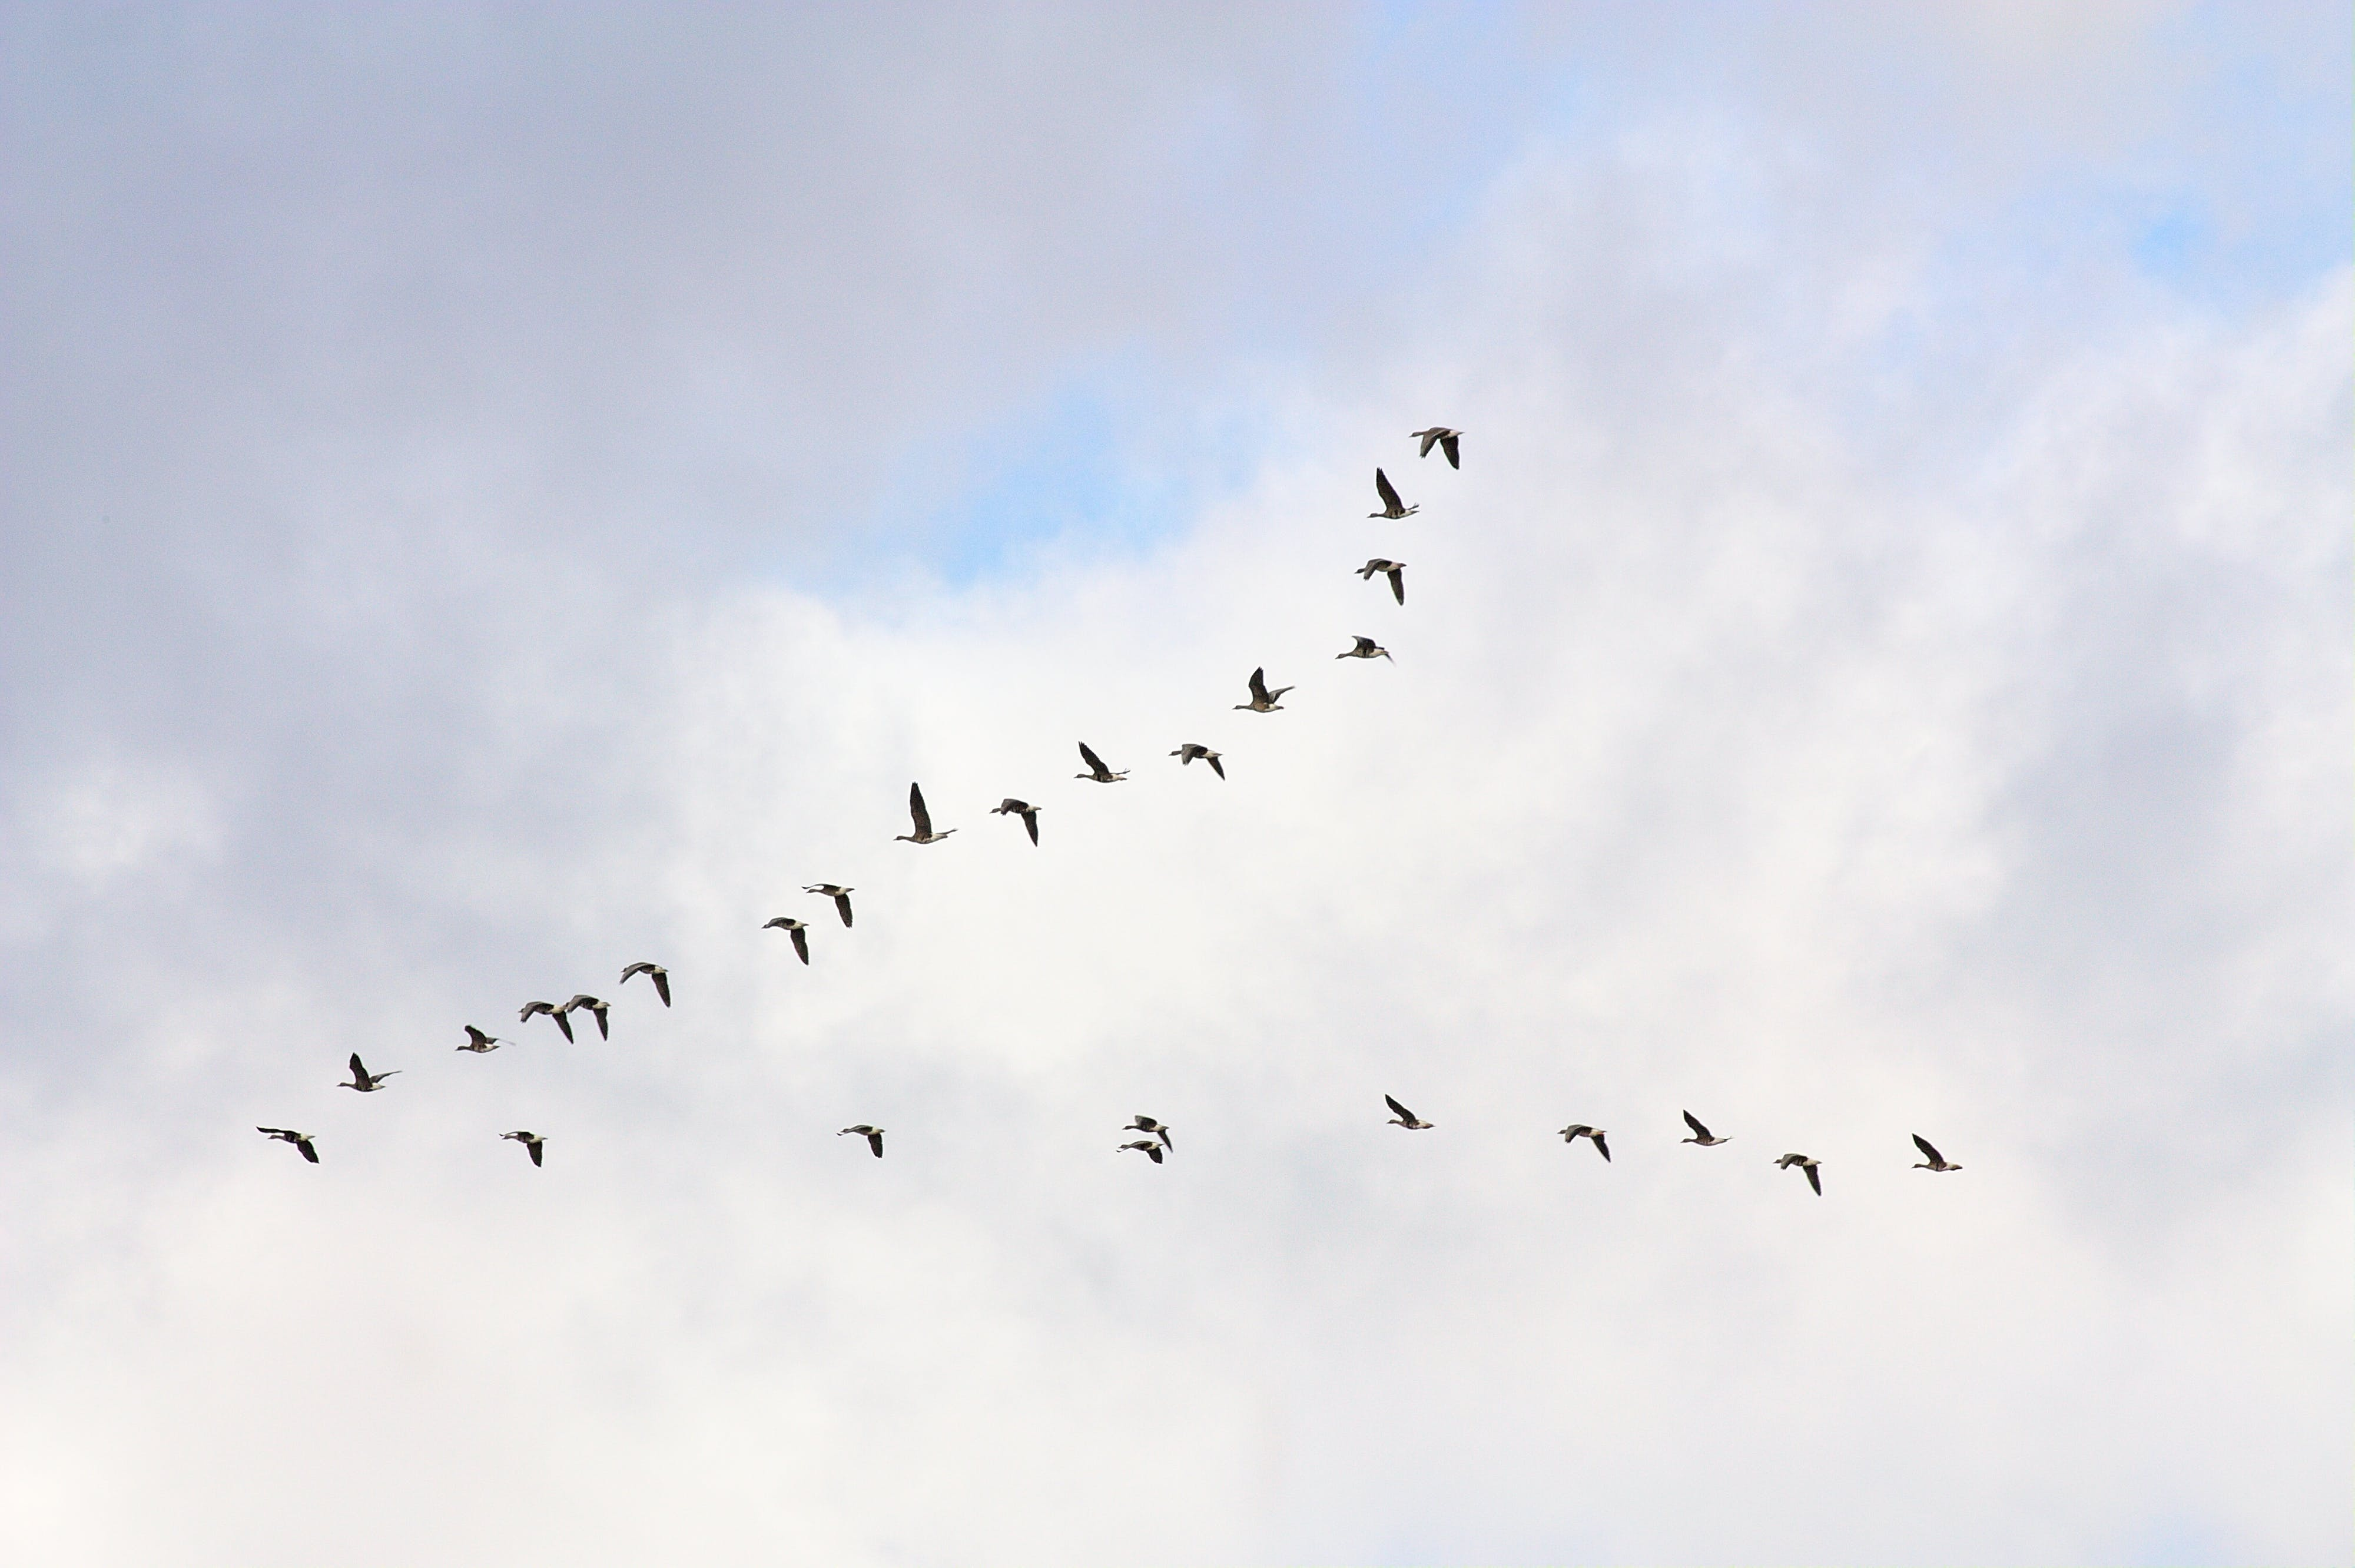 Free stock photo of birds in formation, flying geese, geese